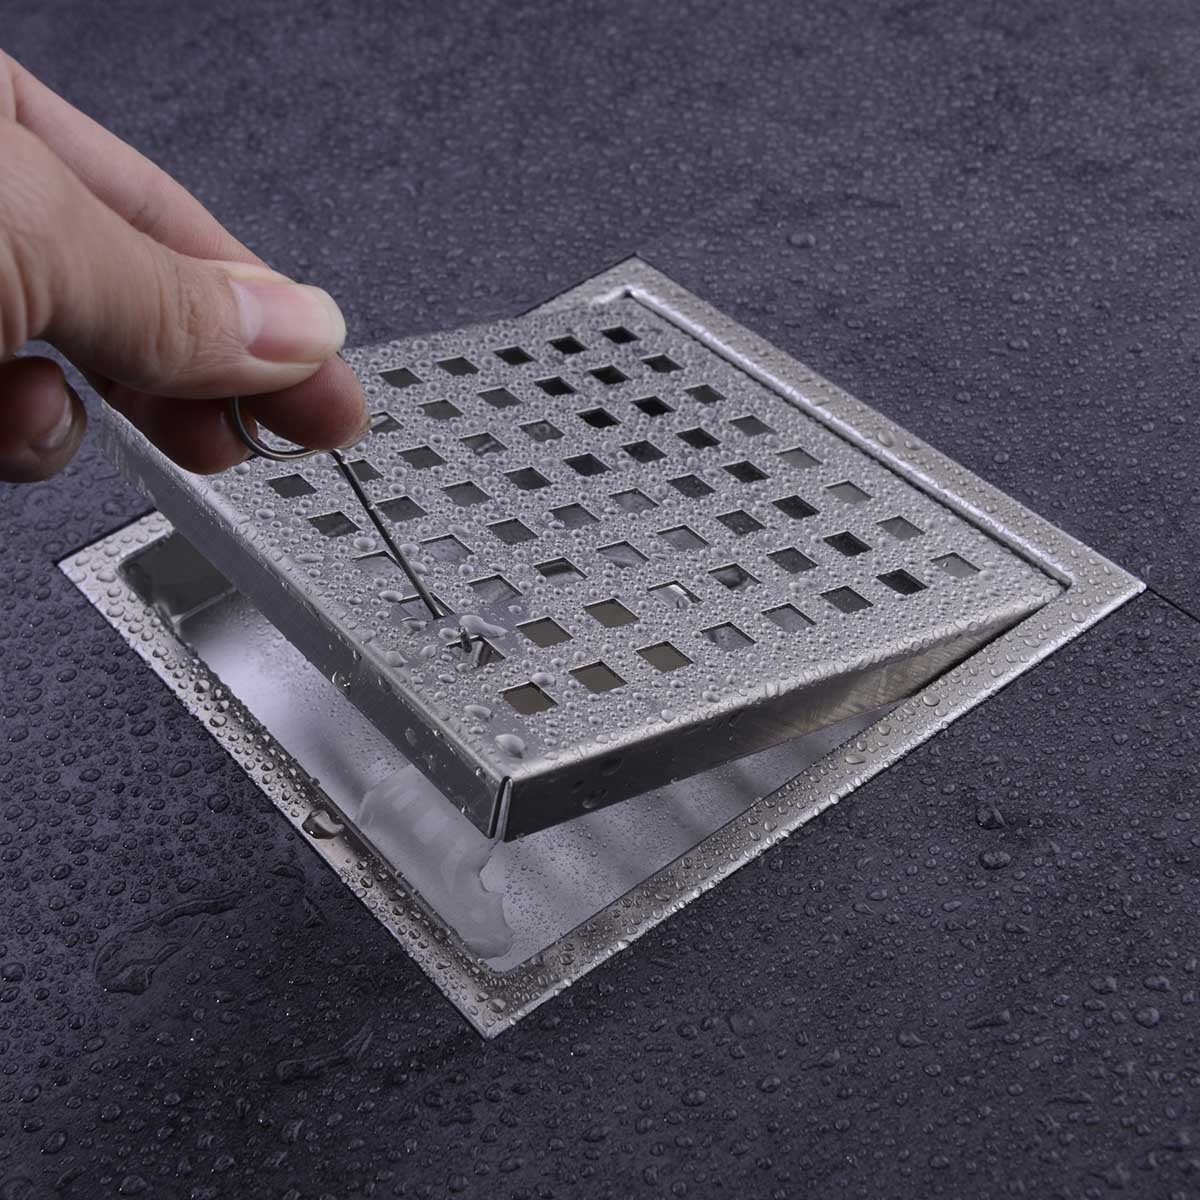 HANEBATH 6 Inch Square Shower Floor Drain With Removal Grate   Made Of  Sus304 Stainless Steel By Hane: Amazon.ca: Tools U0026 Home Improvement